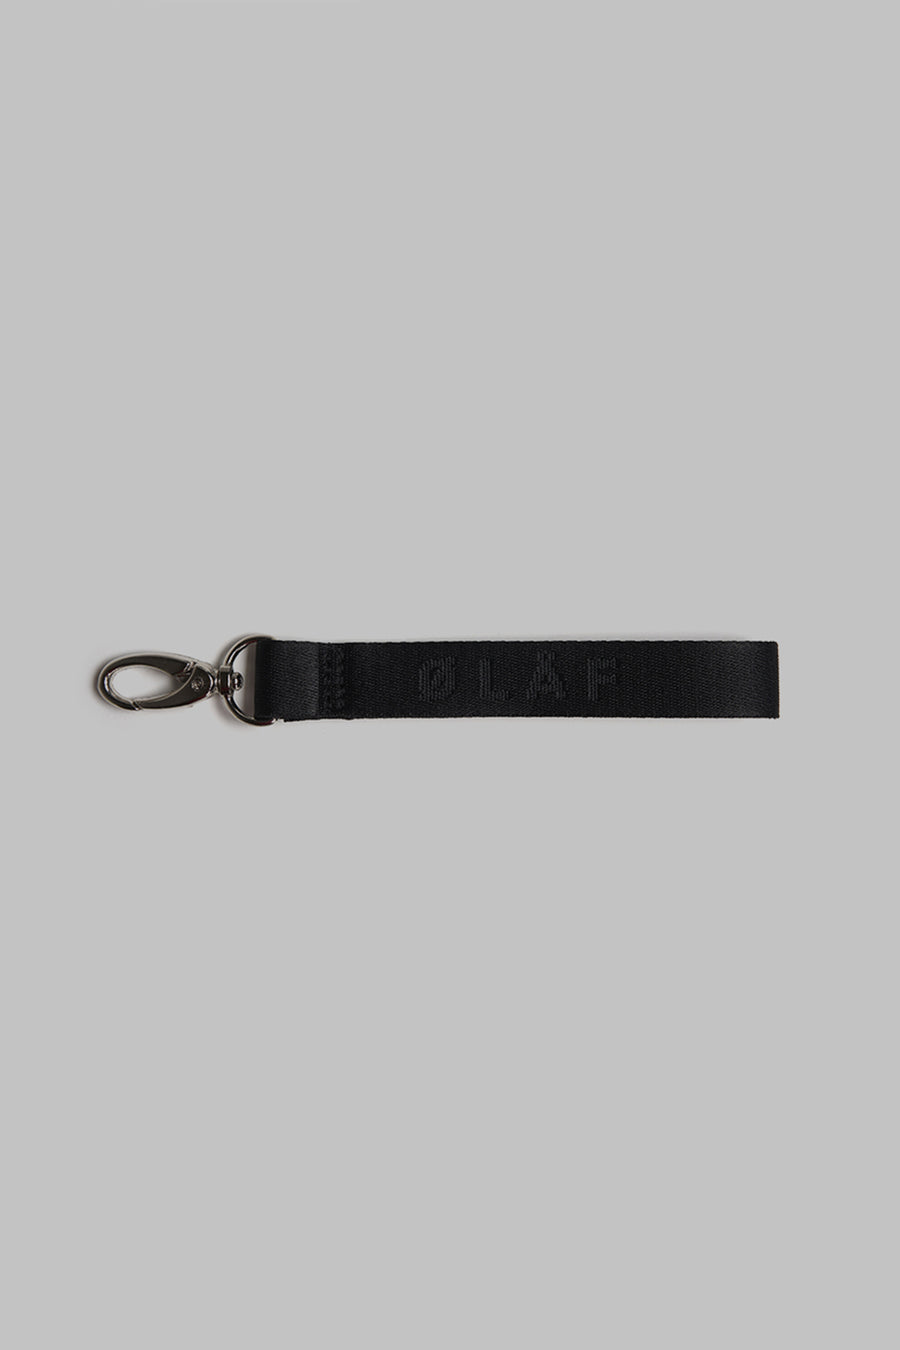 ØLÅF Key Hanger <br>Black